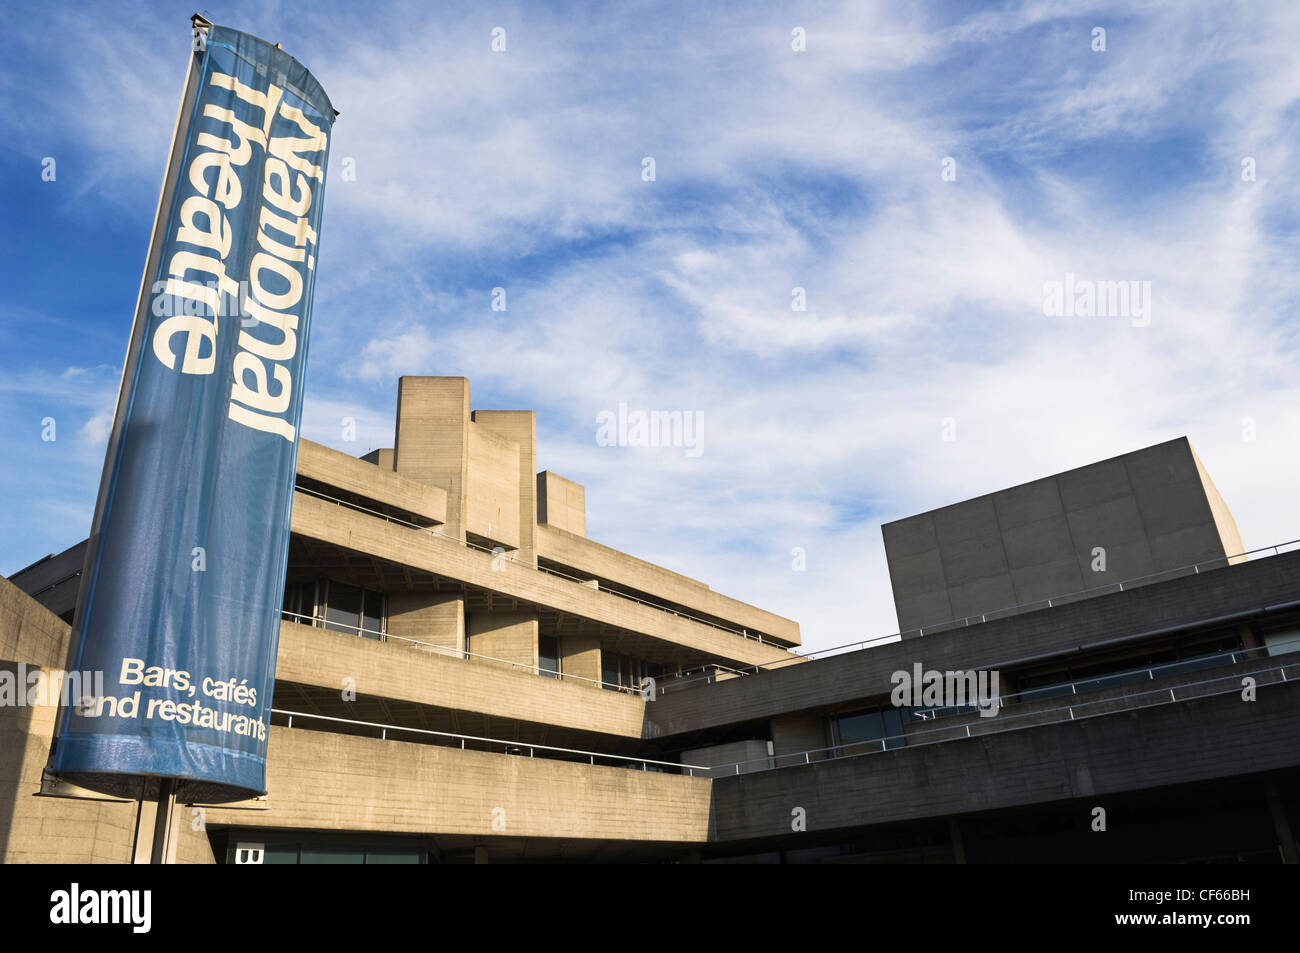 A large banner hanging outside the National Theatre on the South Bank. - Stock Image